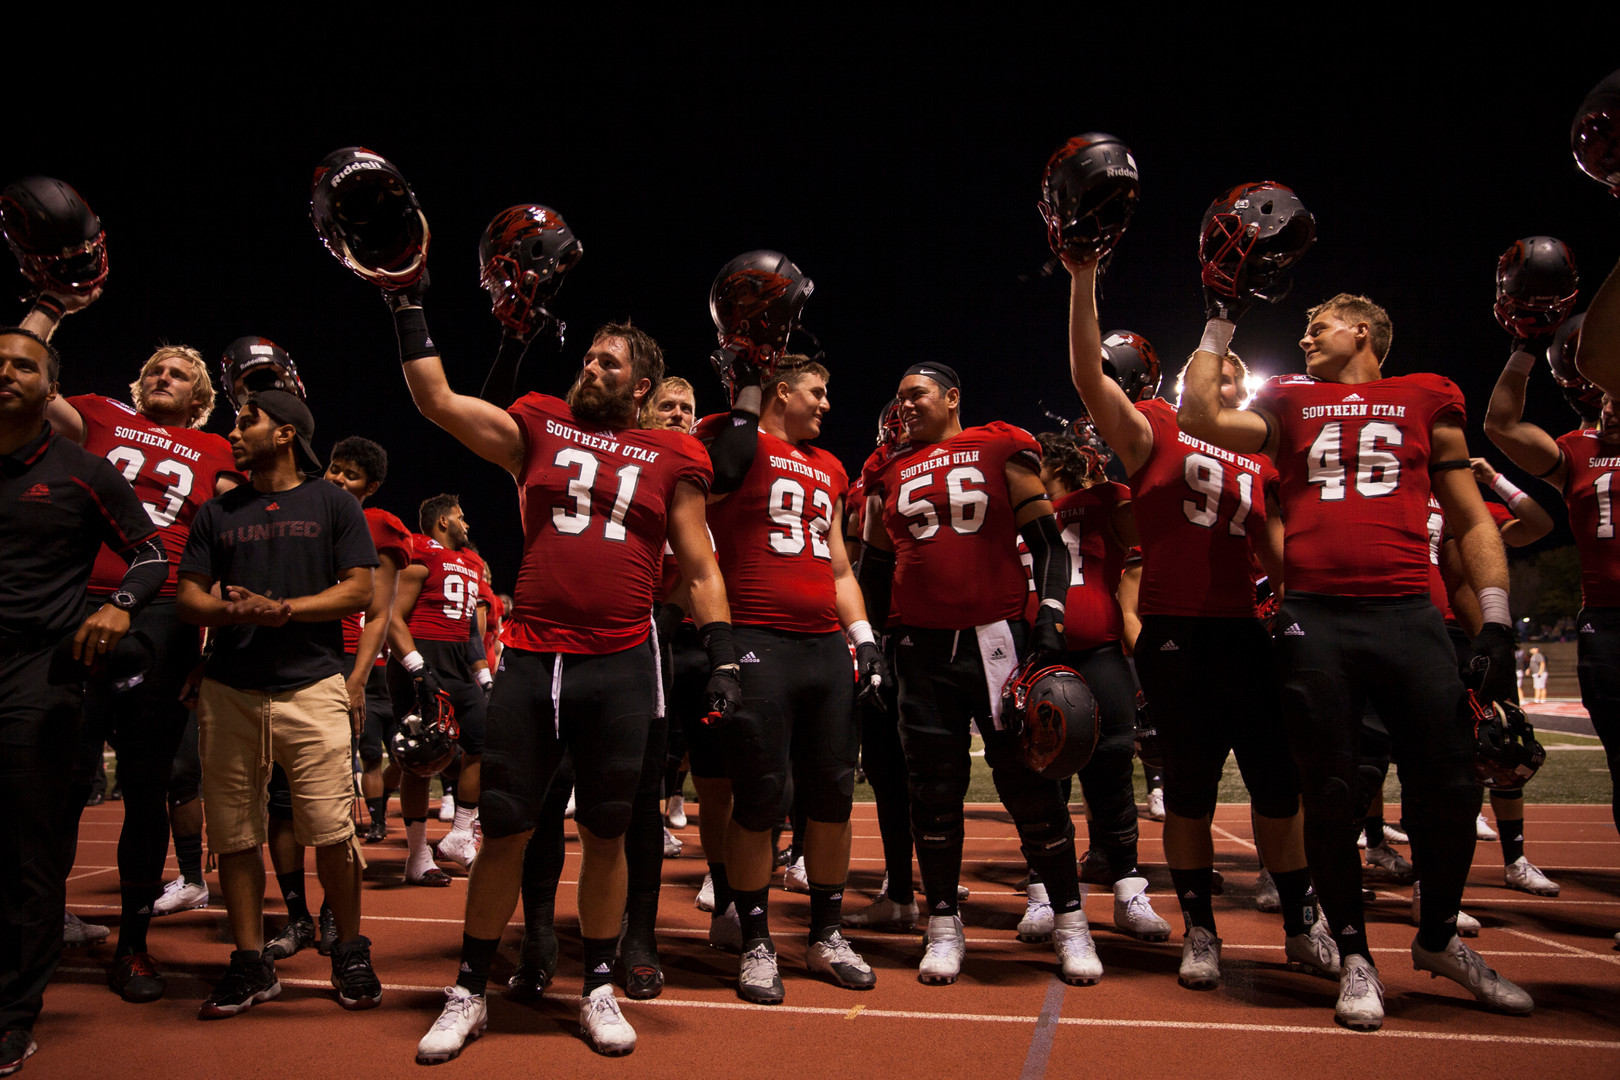 After the victory against Southeast Luisiana, the T-Birds celebrate the end of the first game of the season with the audience. The SUU Thunderbirds won Southeastern Louisiana 28-23 at the Eccles Coliseum, in Cedar City. (photo-series 03/03) © September 2016